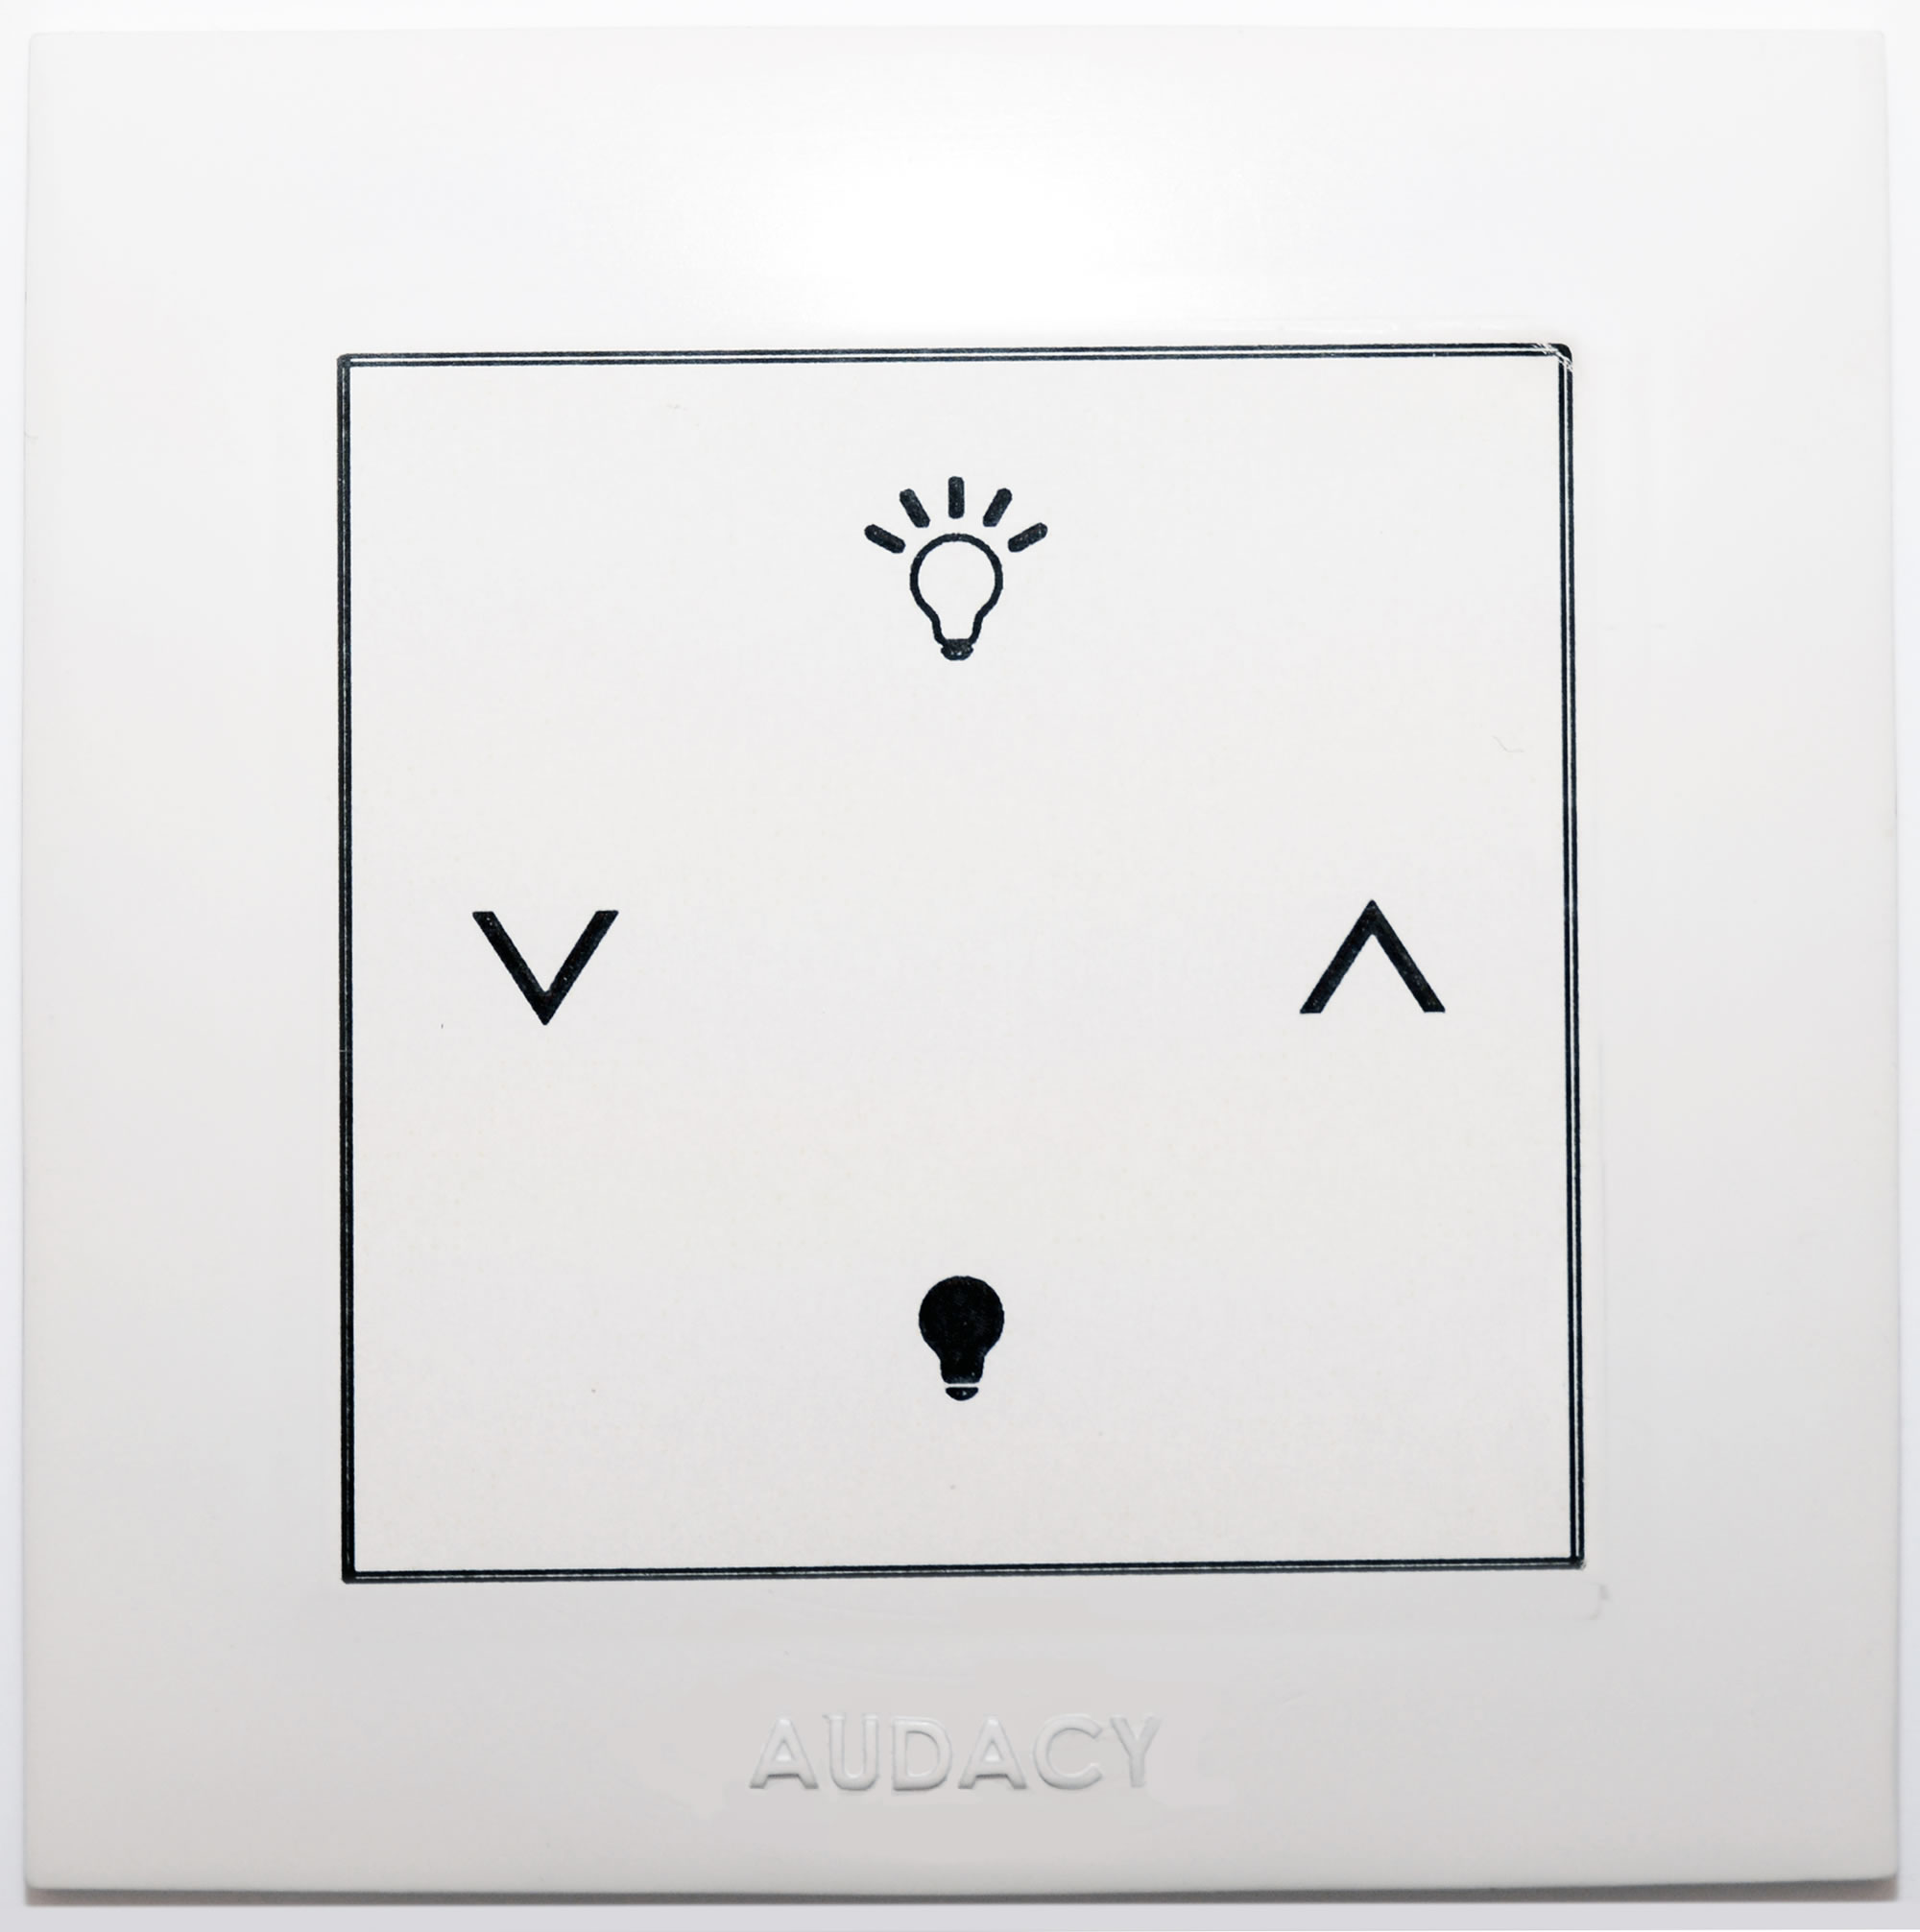 Audacy Wall Mount Switch On/Off & Dimming